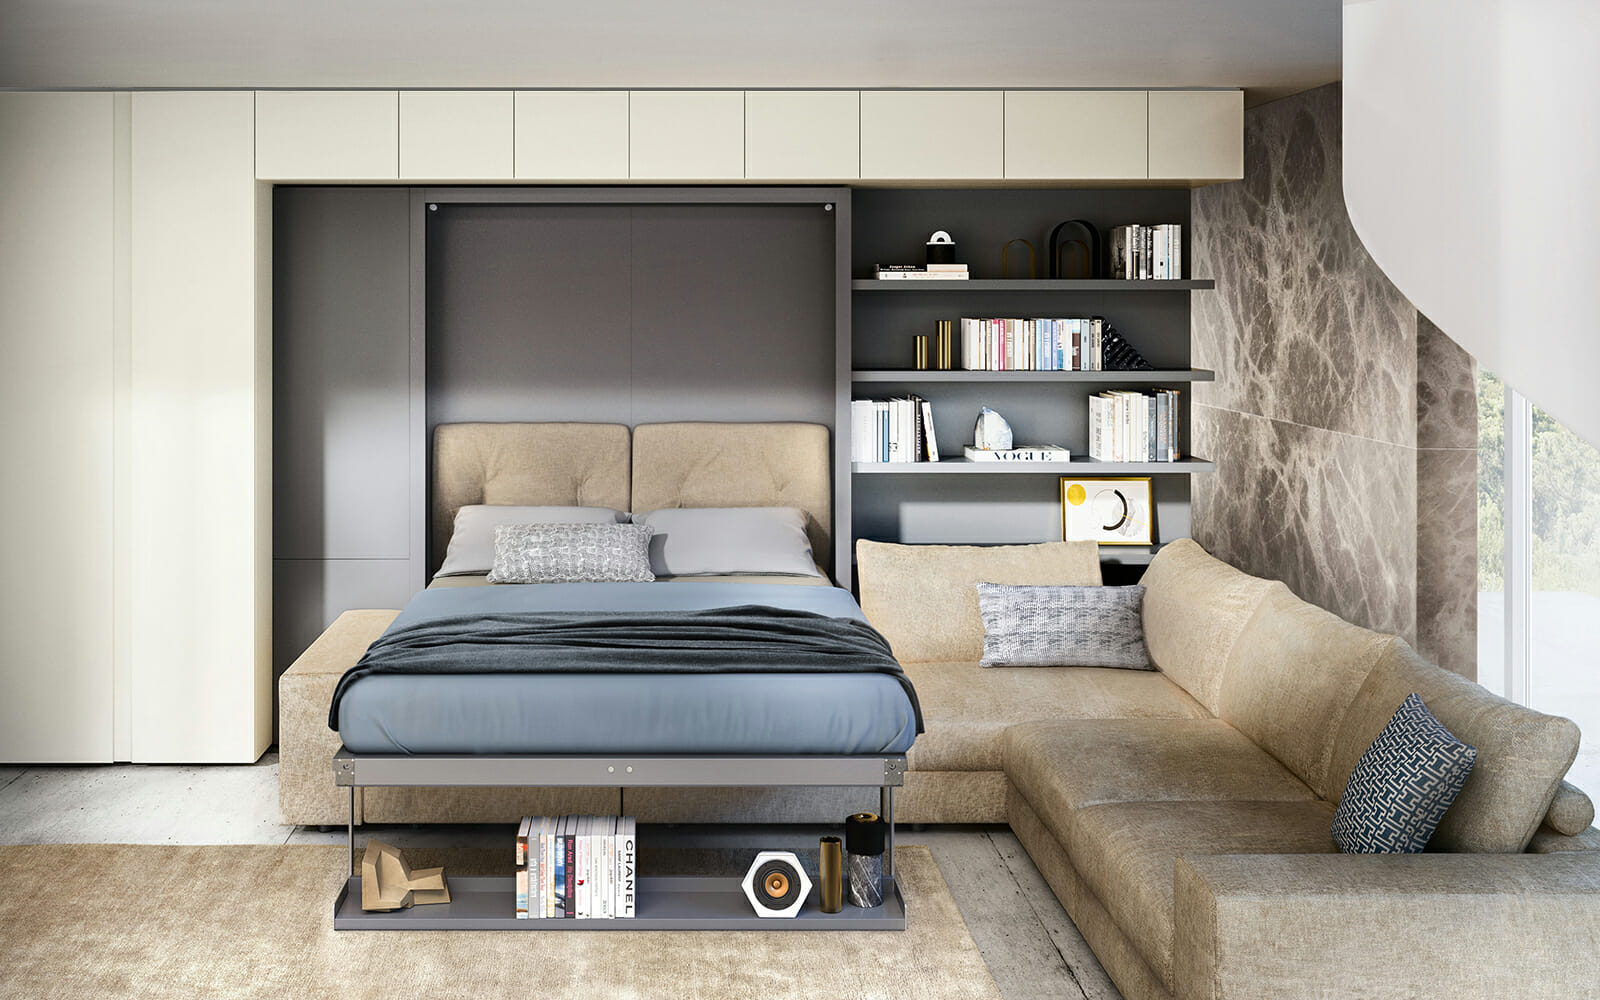 Design Bed Kopen.Resource Furniture Transforming Space Saving Furniture